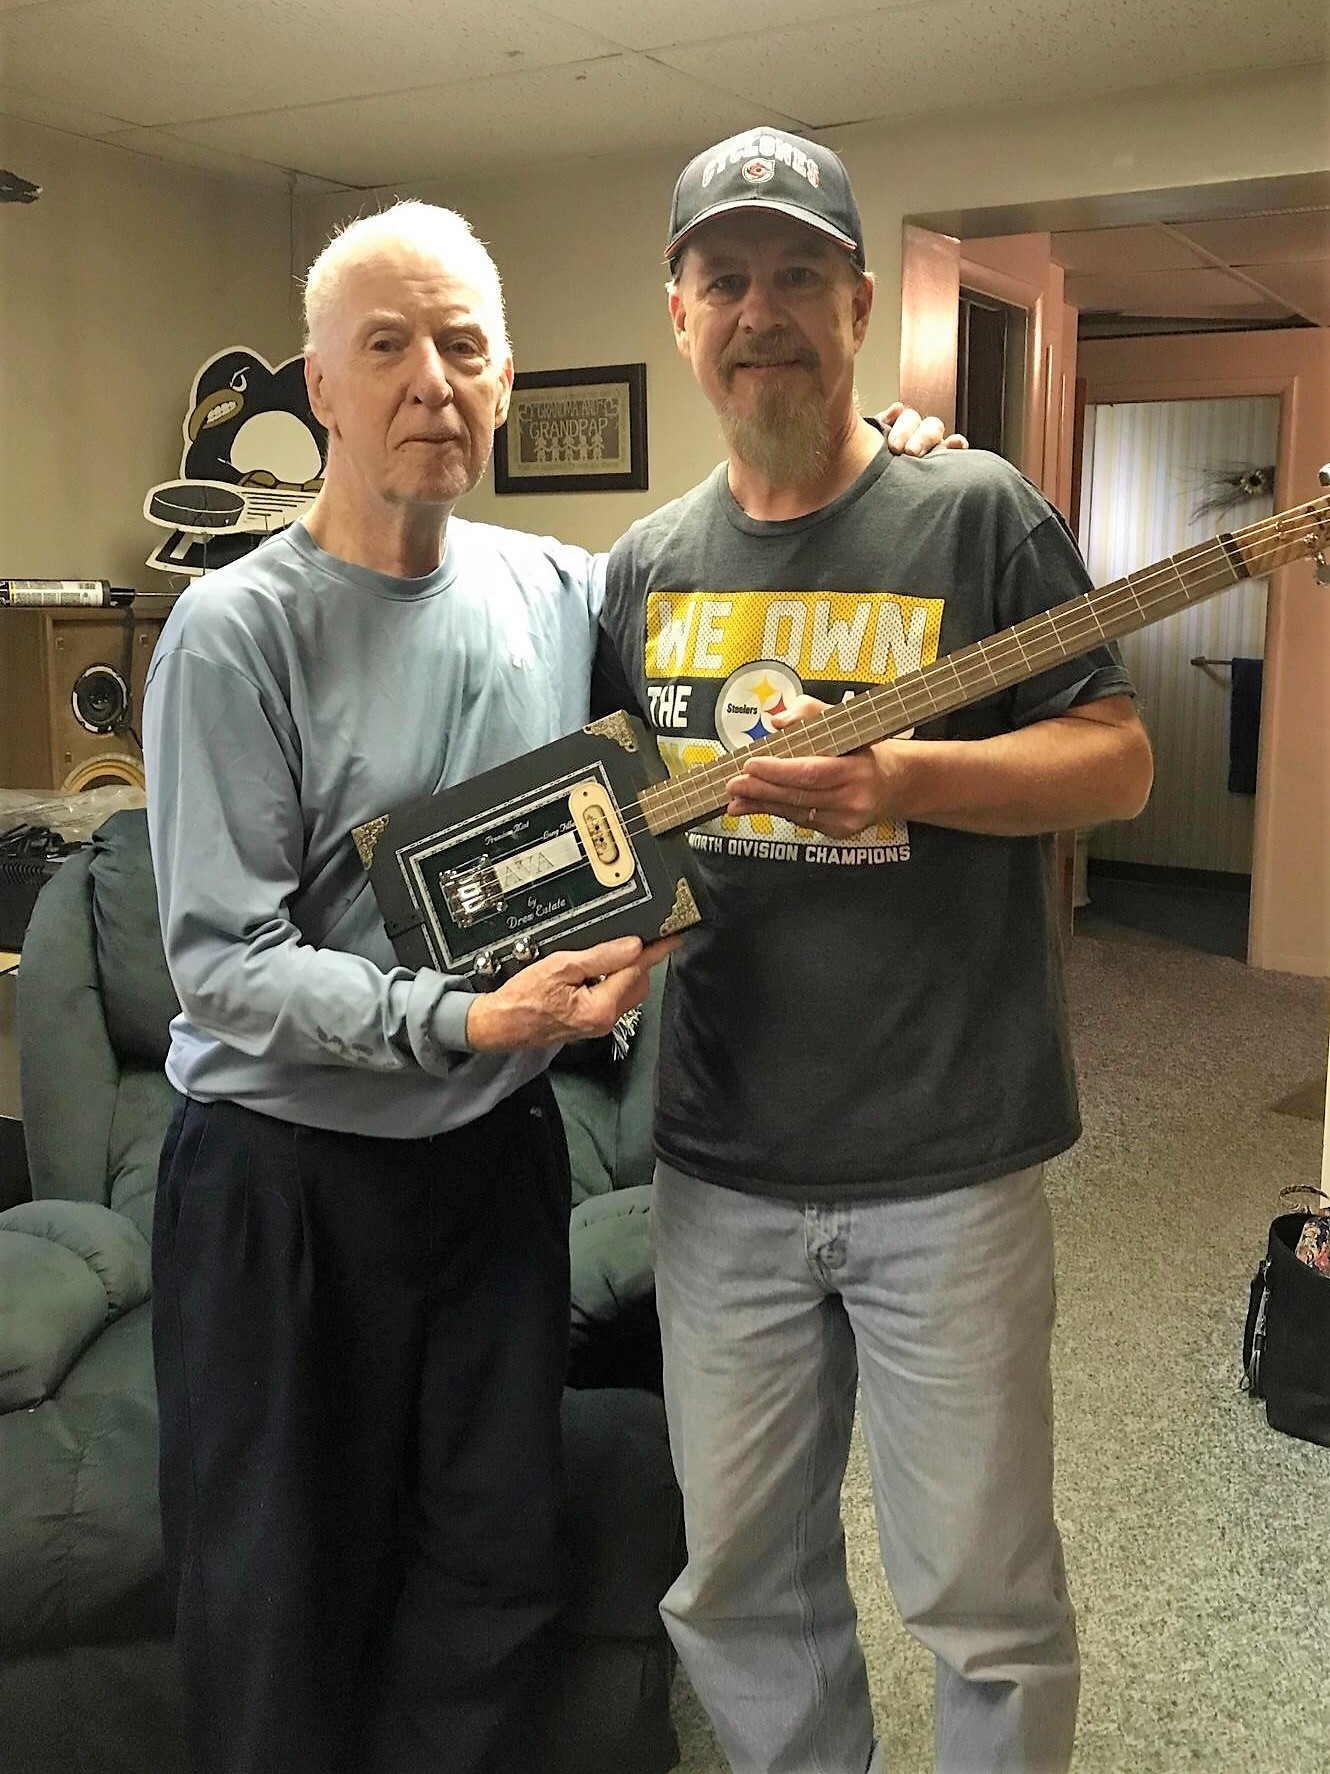 Scott M. and his dad holding the first cigar box guitar they've built together